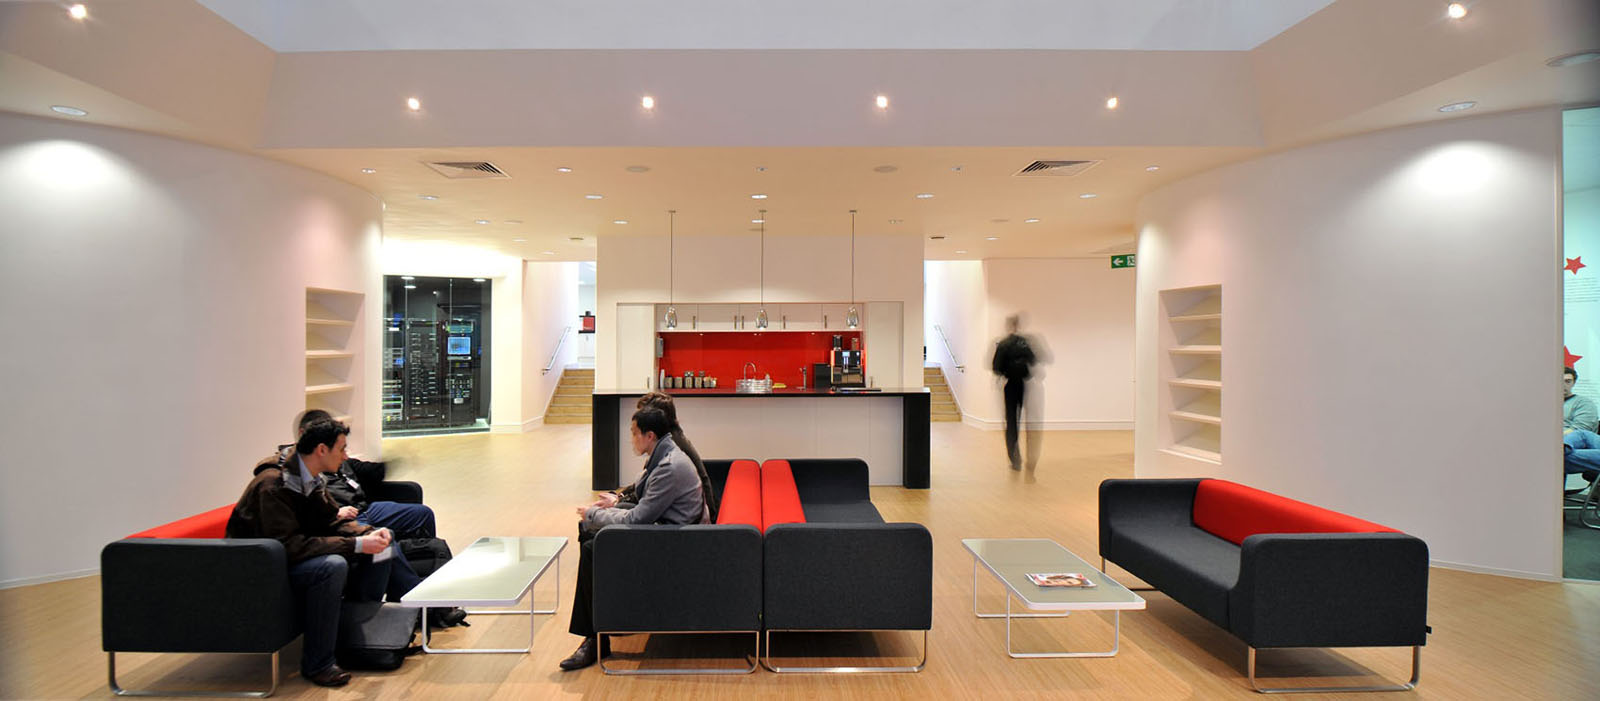 Inspiring British Office Interior Design At Rackspace on beautiful country home